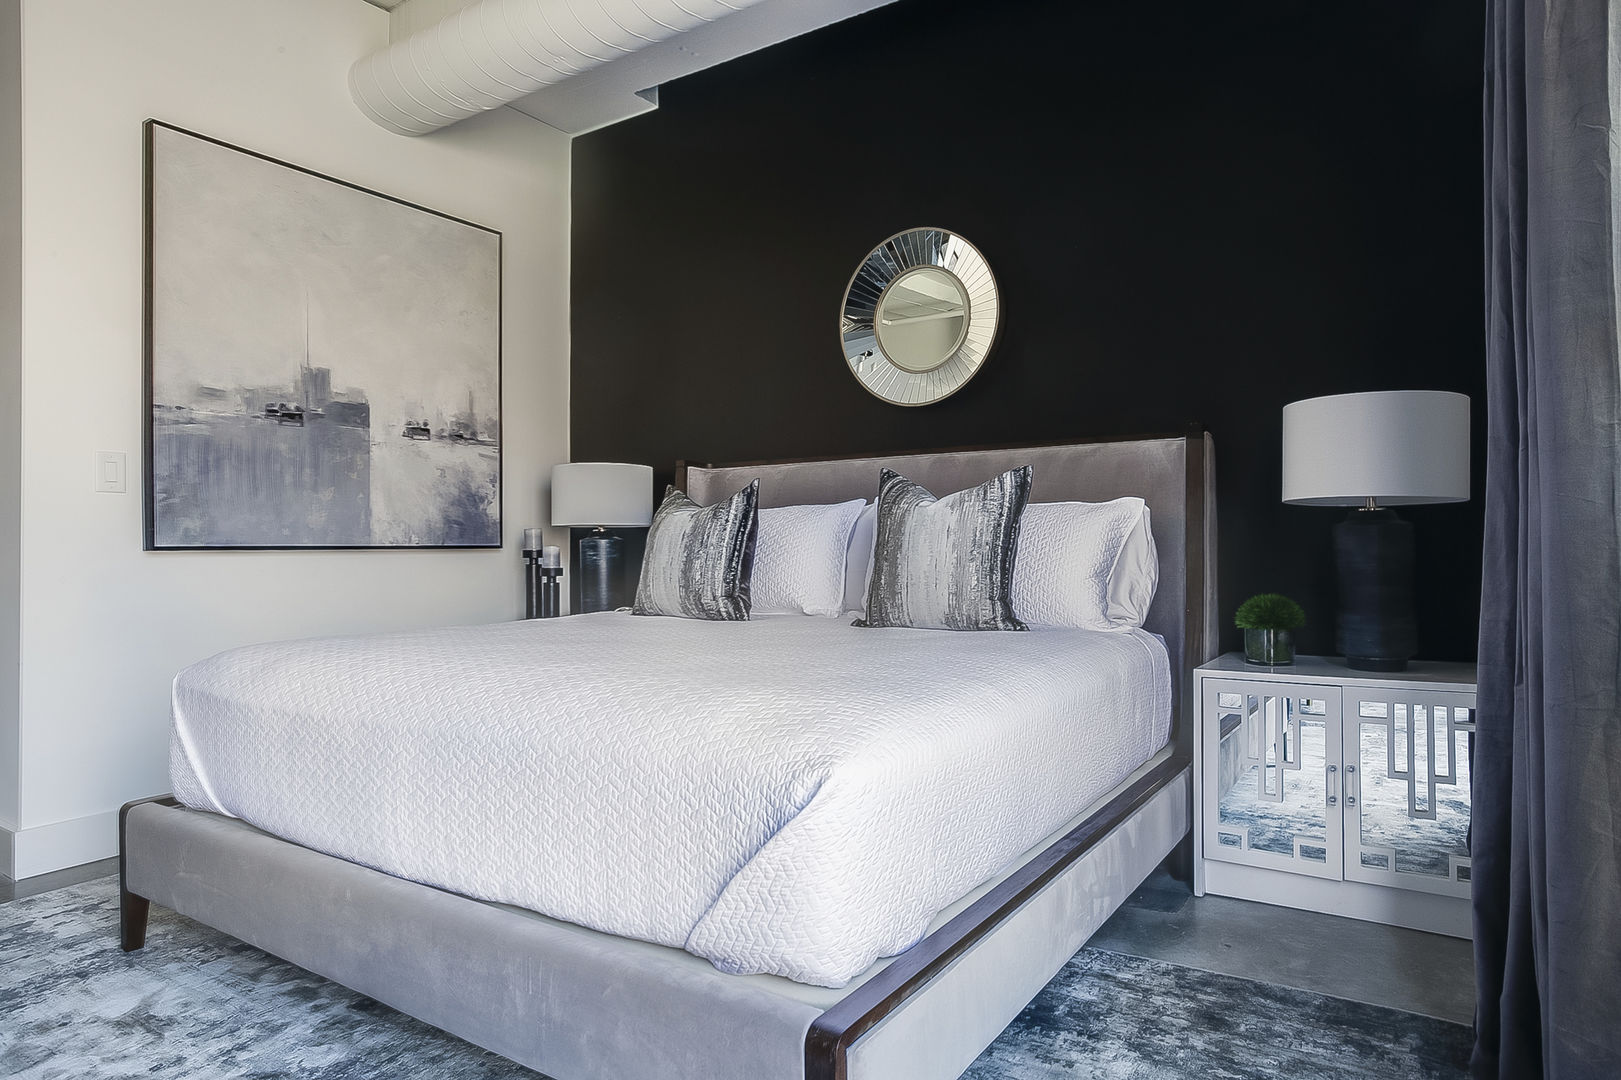 The sleeping area of this Ponce City Market rental with large bed and nightstands.